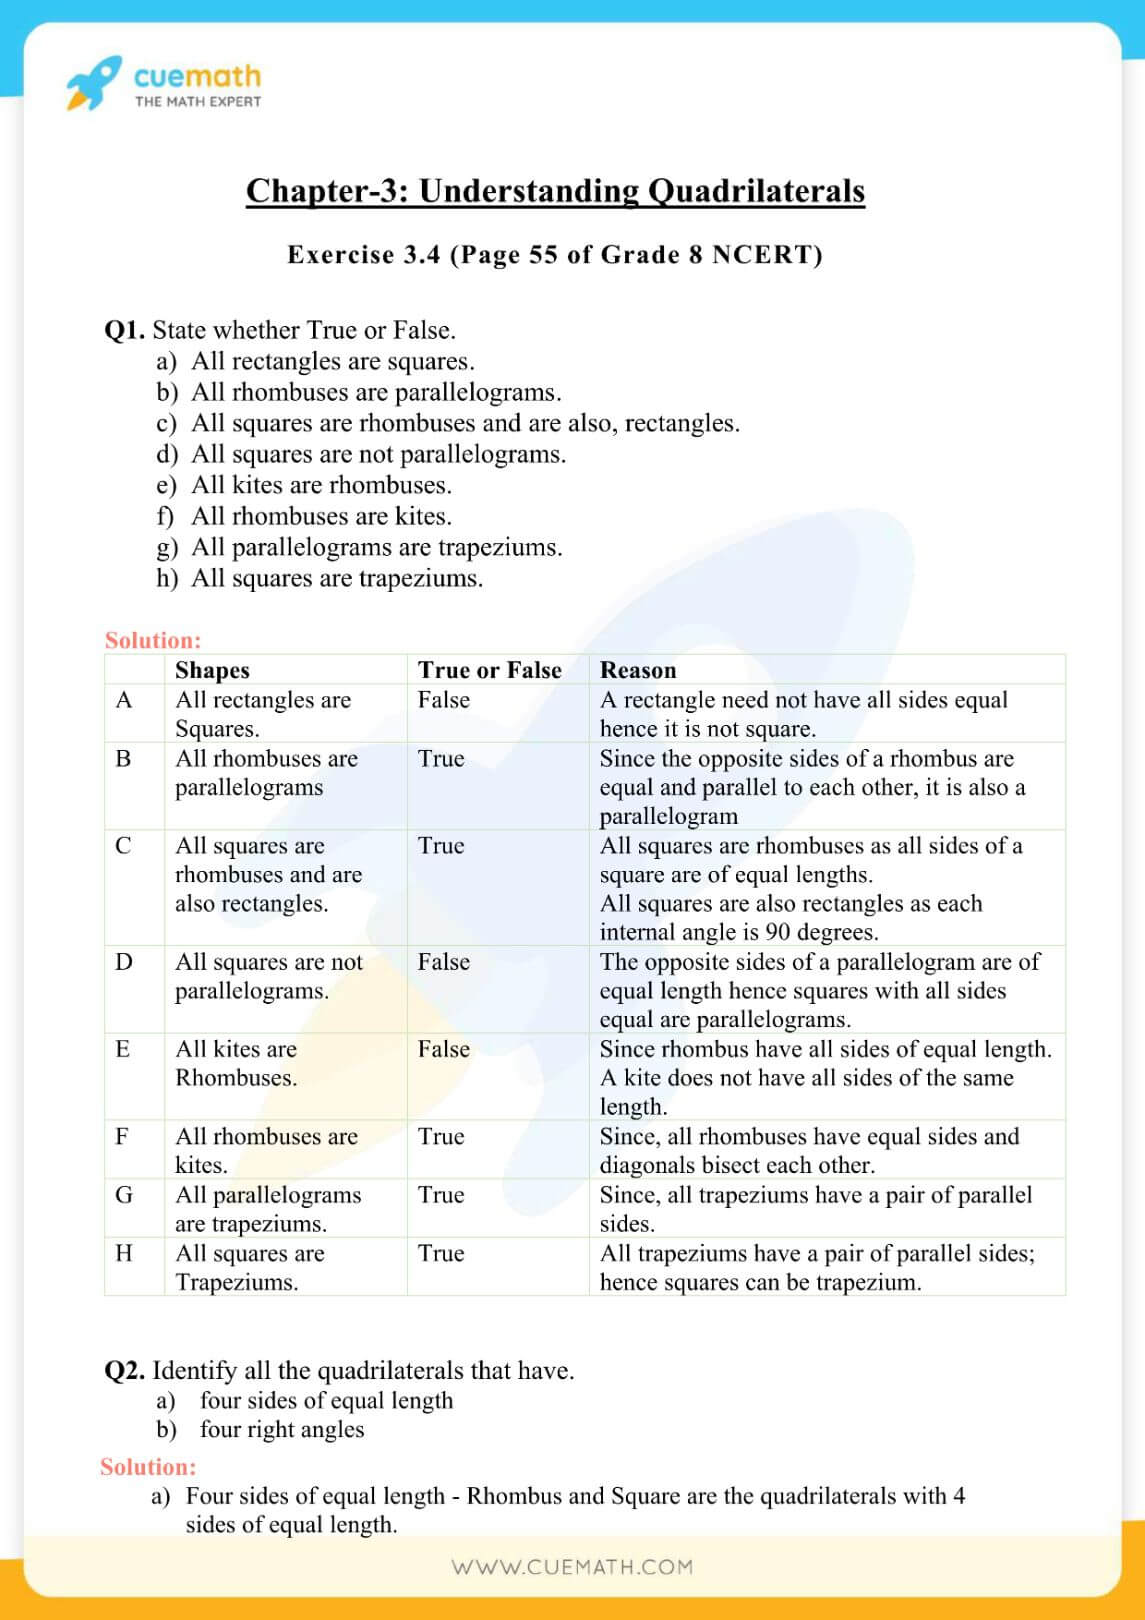 NCERT Solutions Class 8 Math Chapter 3 Exercise 3.4 38